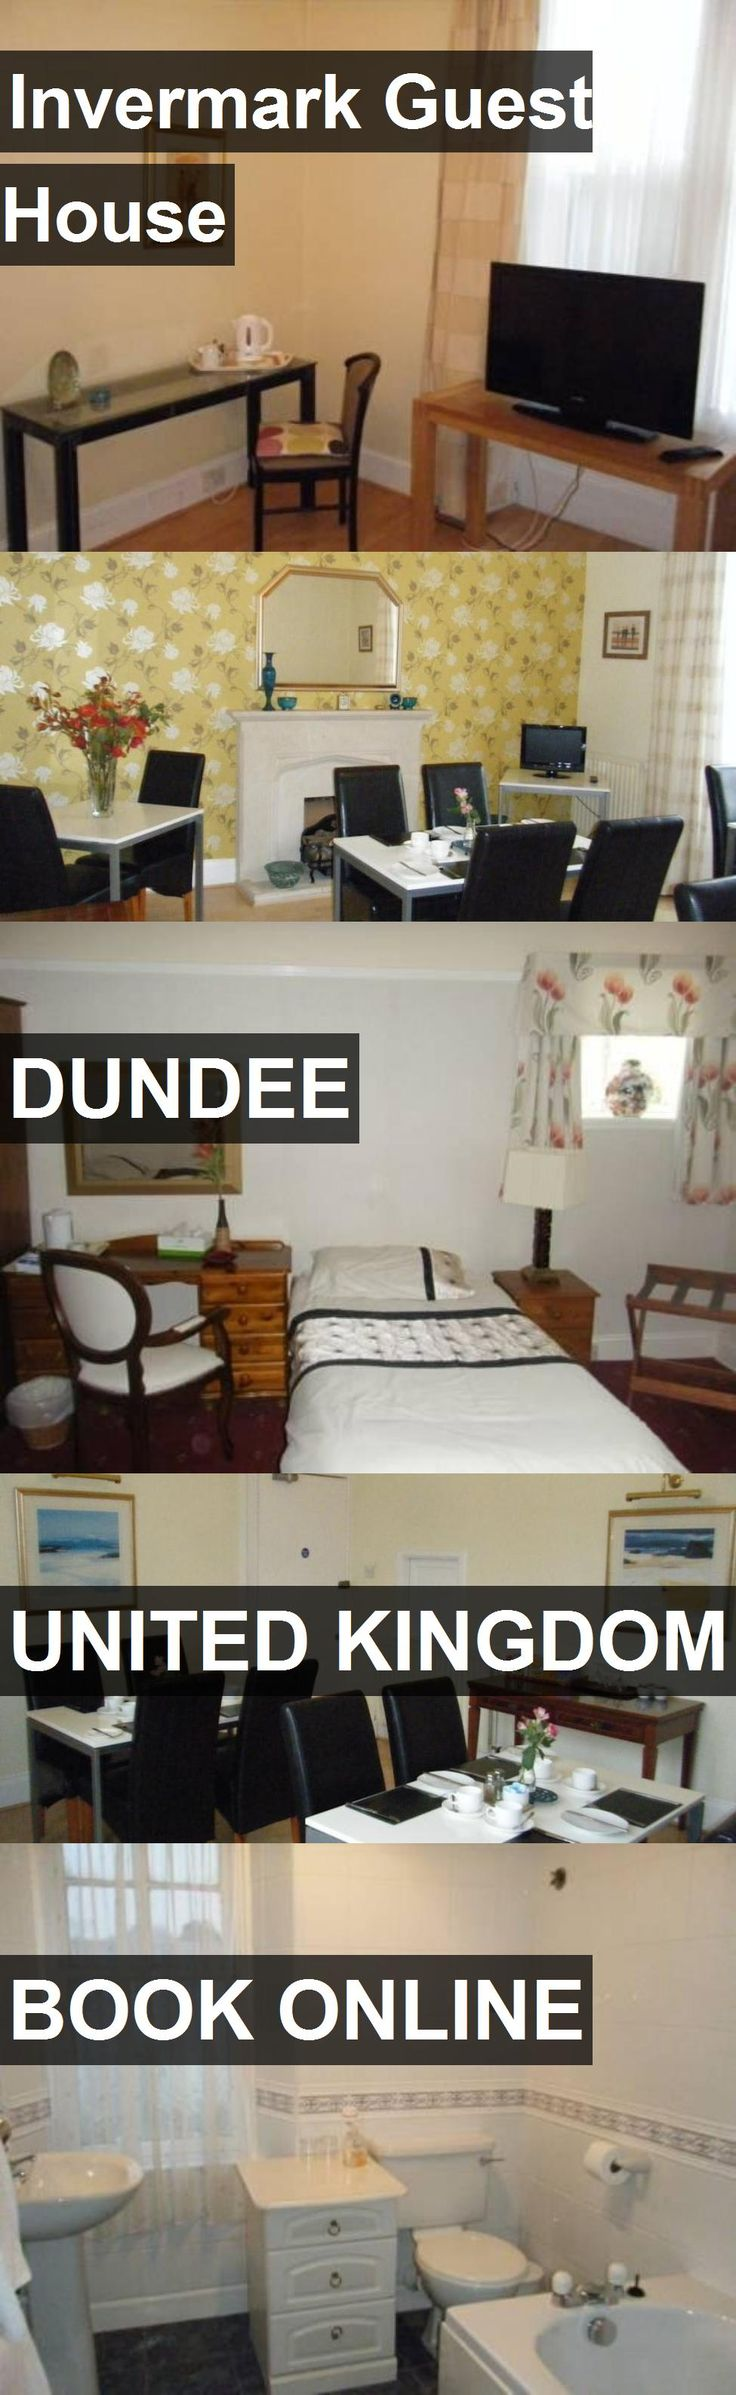 Hotel Invermark Guest House in Dundee, United Kingdom. For more information, photos, reviews and best prices please follow the link. #UnitedKingdom #Dundee #InvermarkGuestHouse #hotel #travel #vacation